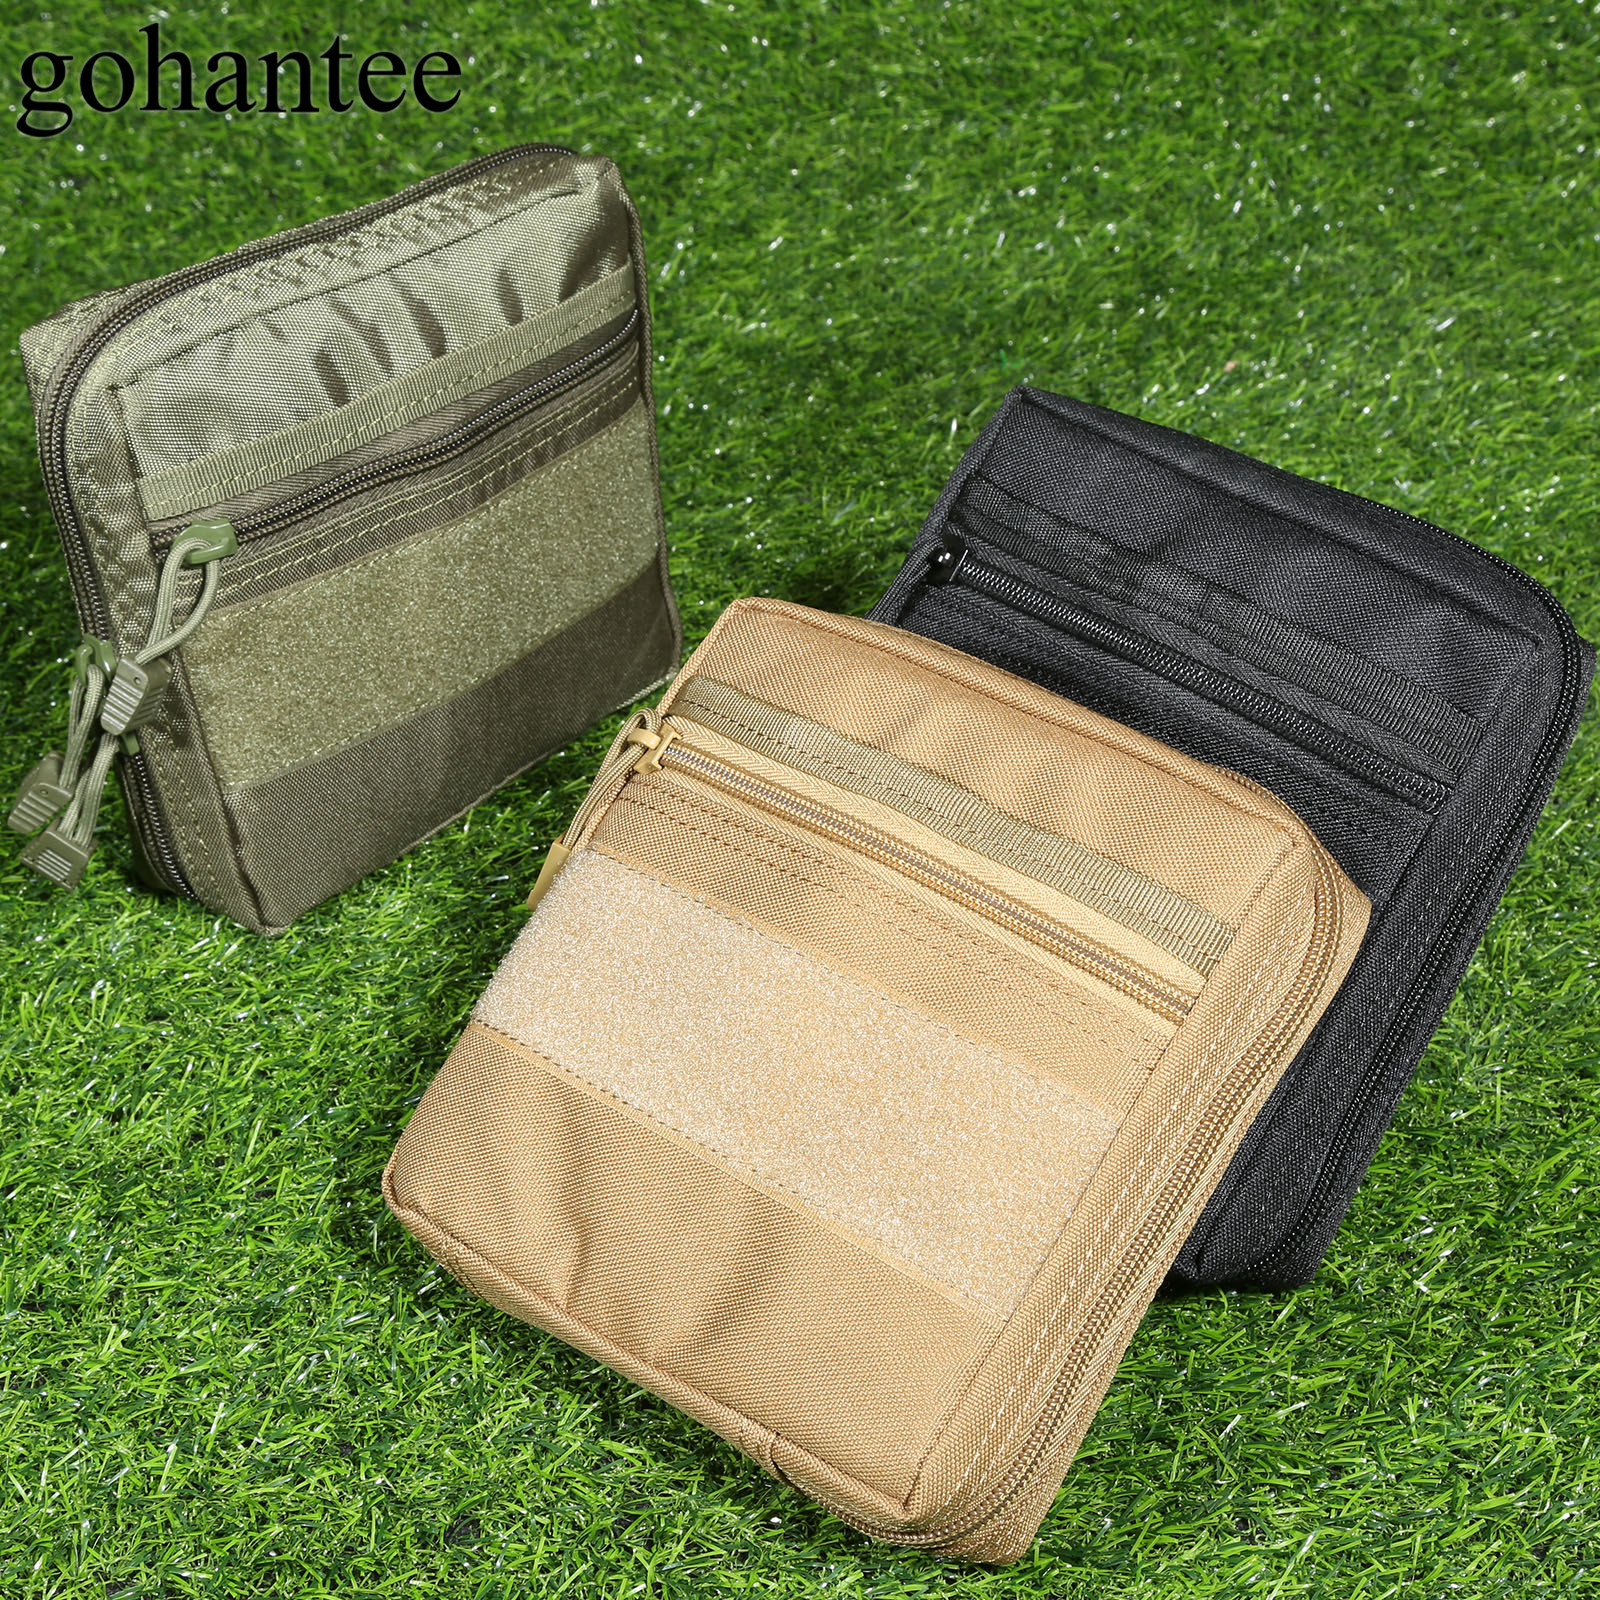 gohantee MOLLE Tactical Pouch Military First Aid Survival Bag Outdoor Emergency Medical Kits EDC Tool Utility Gadget Mag Pocket outlife new style professional military tactical multifunction shovel outdoor camping survival folding spade tool equipment